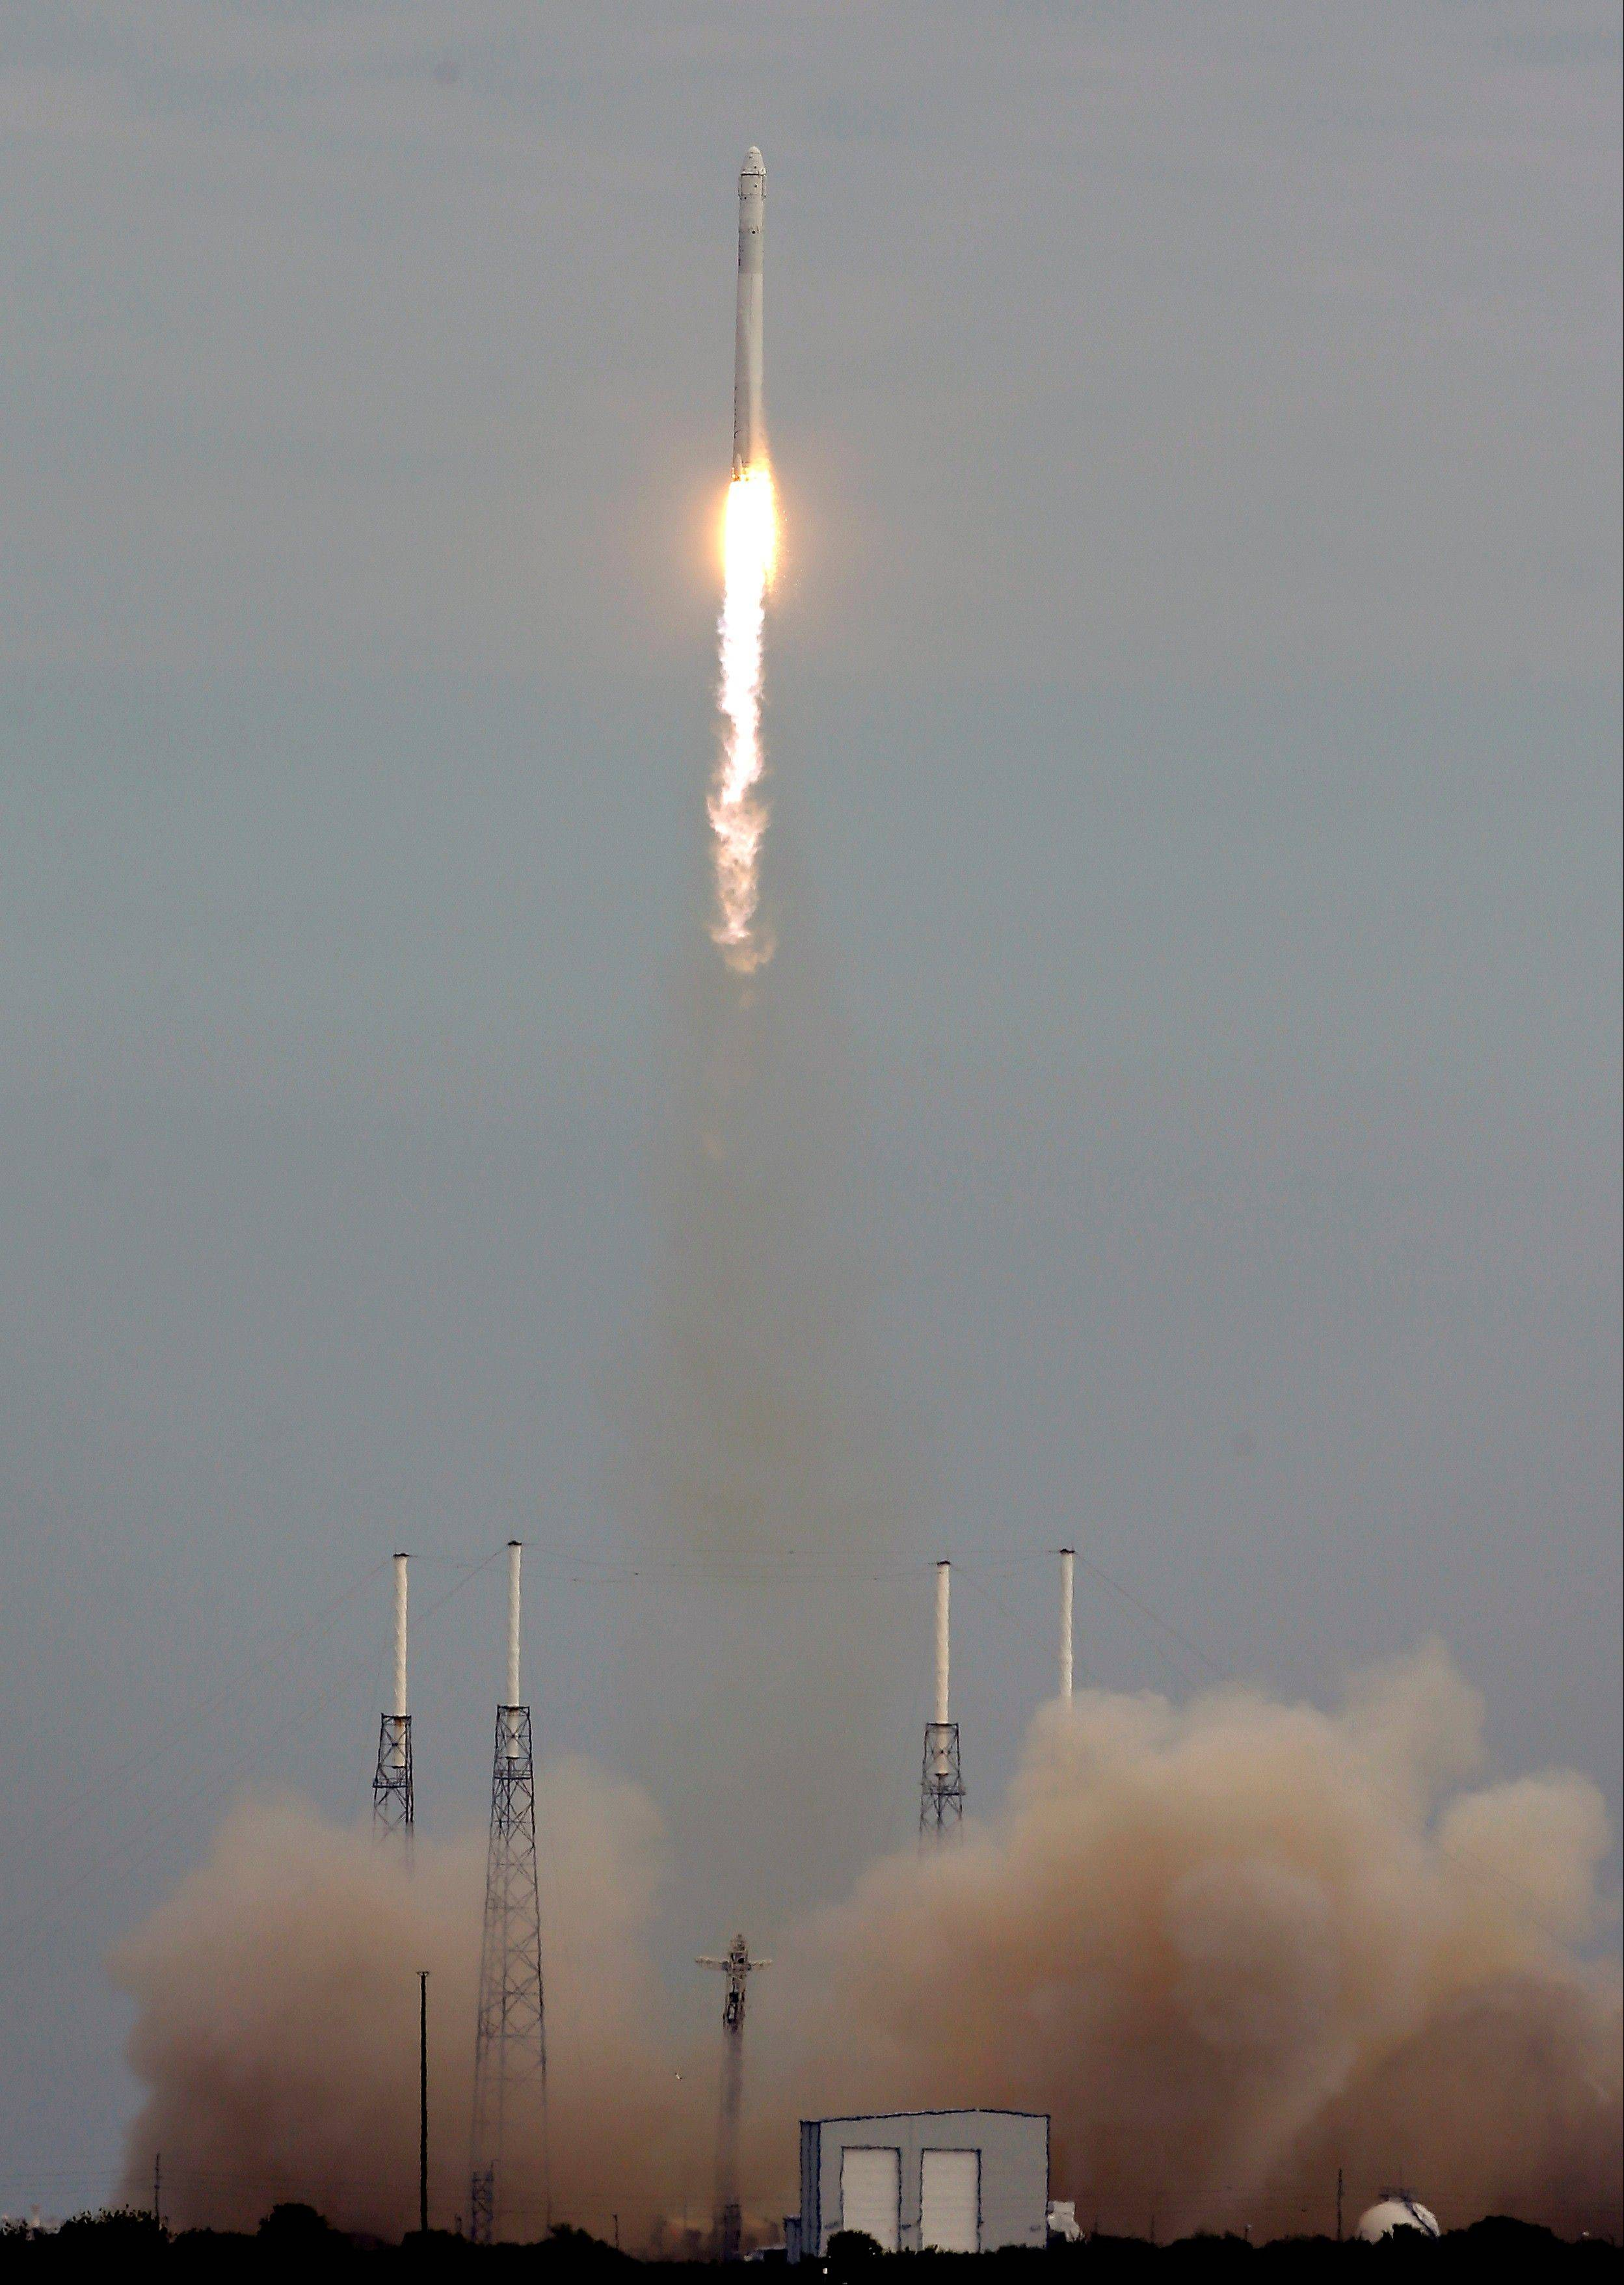 The unmanned Falcon 9 SpaceX rocket lifts off Friday from launch complex 40 at the Cape Canaveral Air Force Station in Cape Canaveral, Fla.